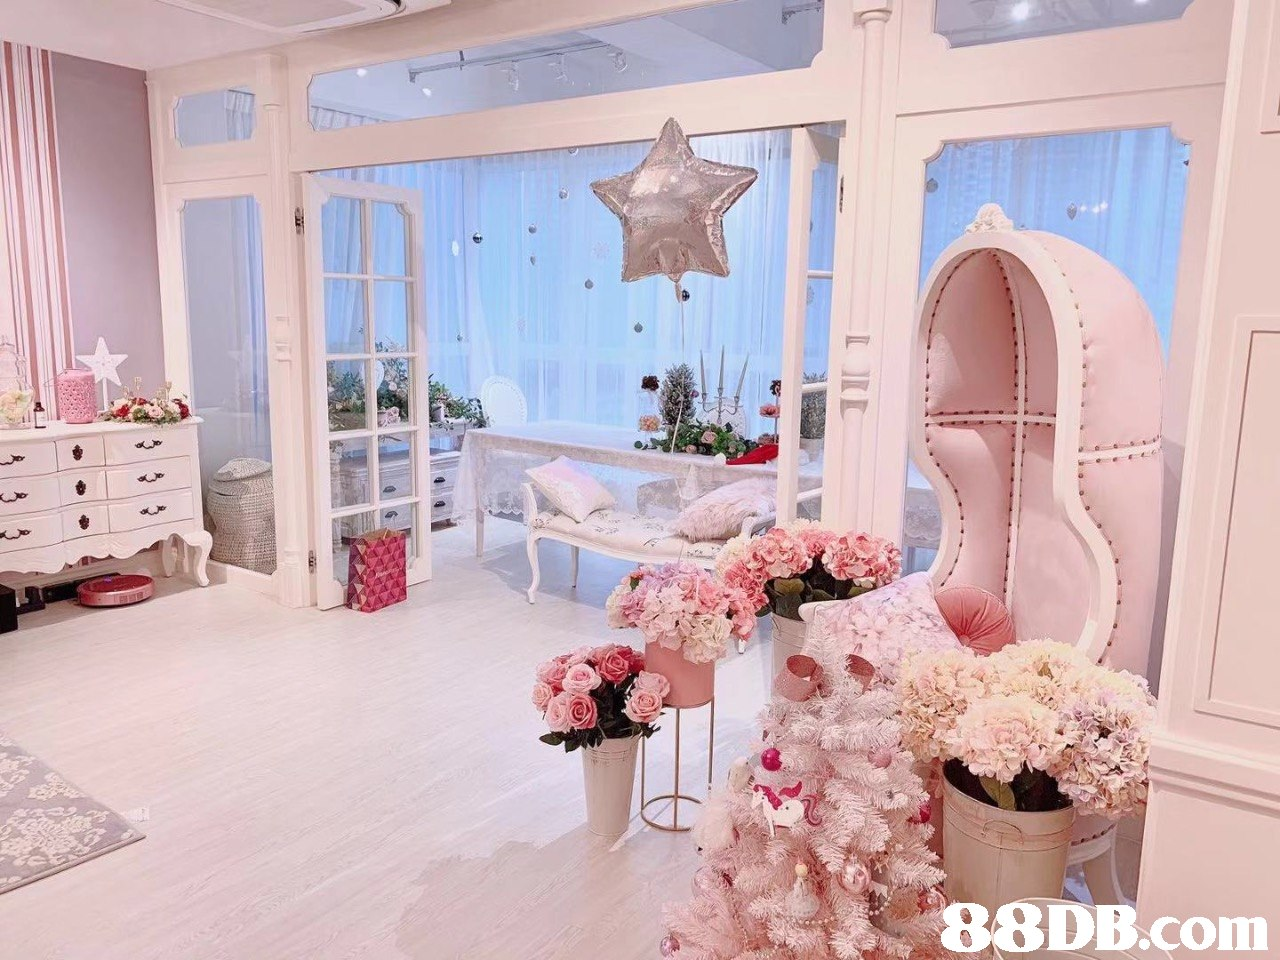 pink,room,product,interior design,bed